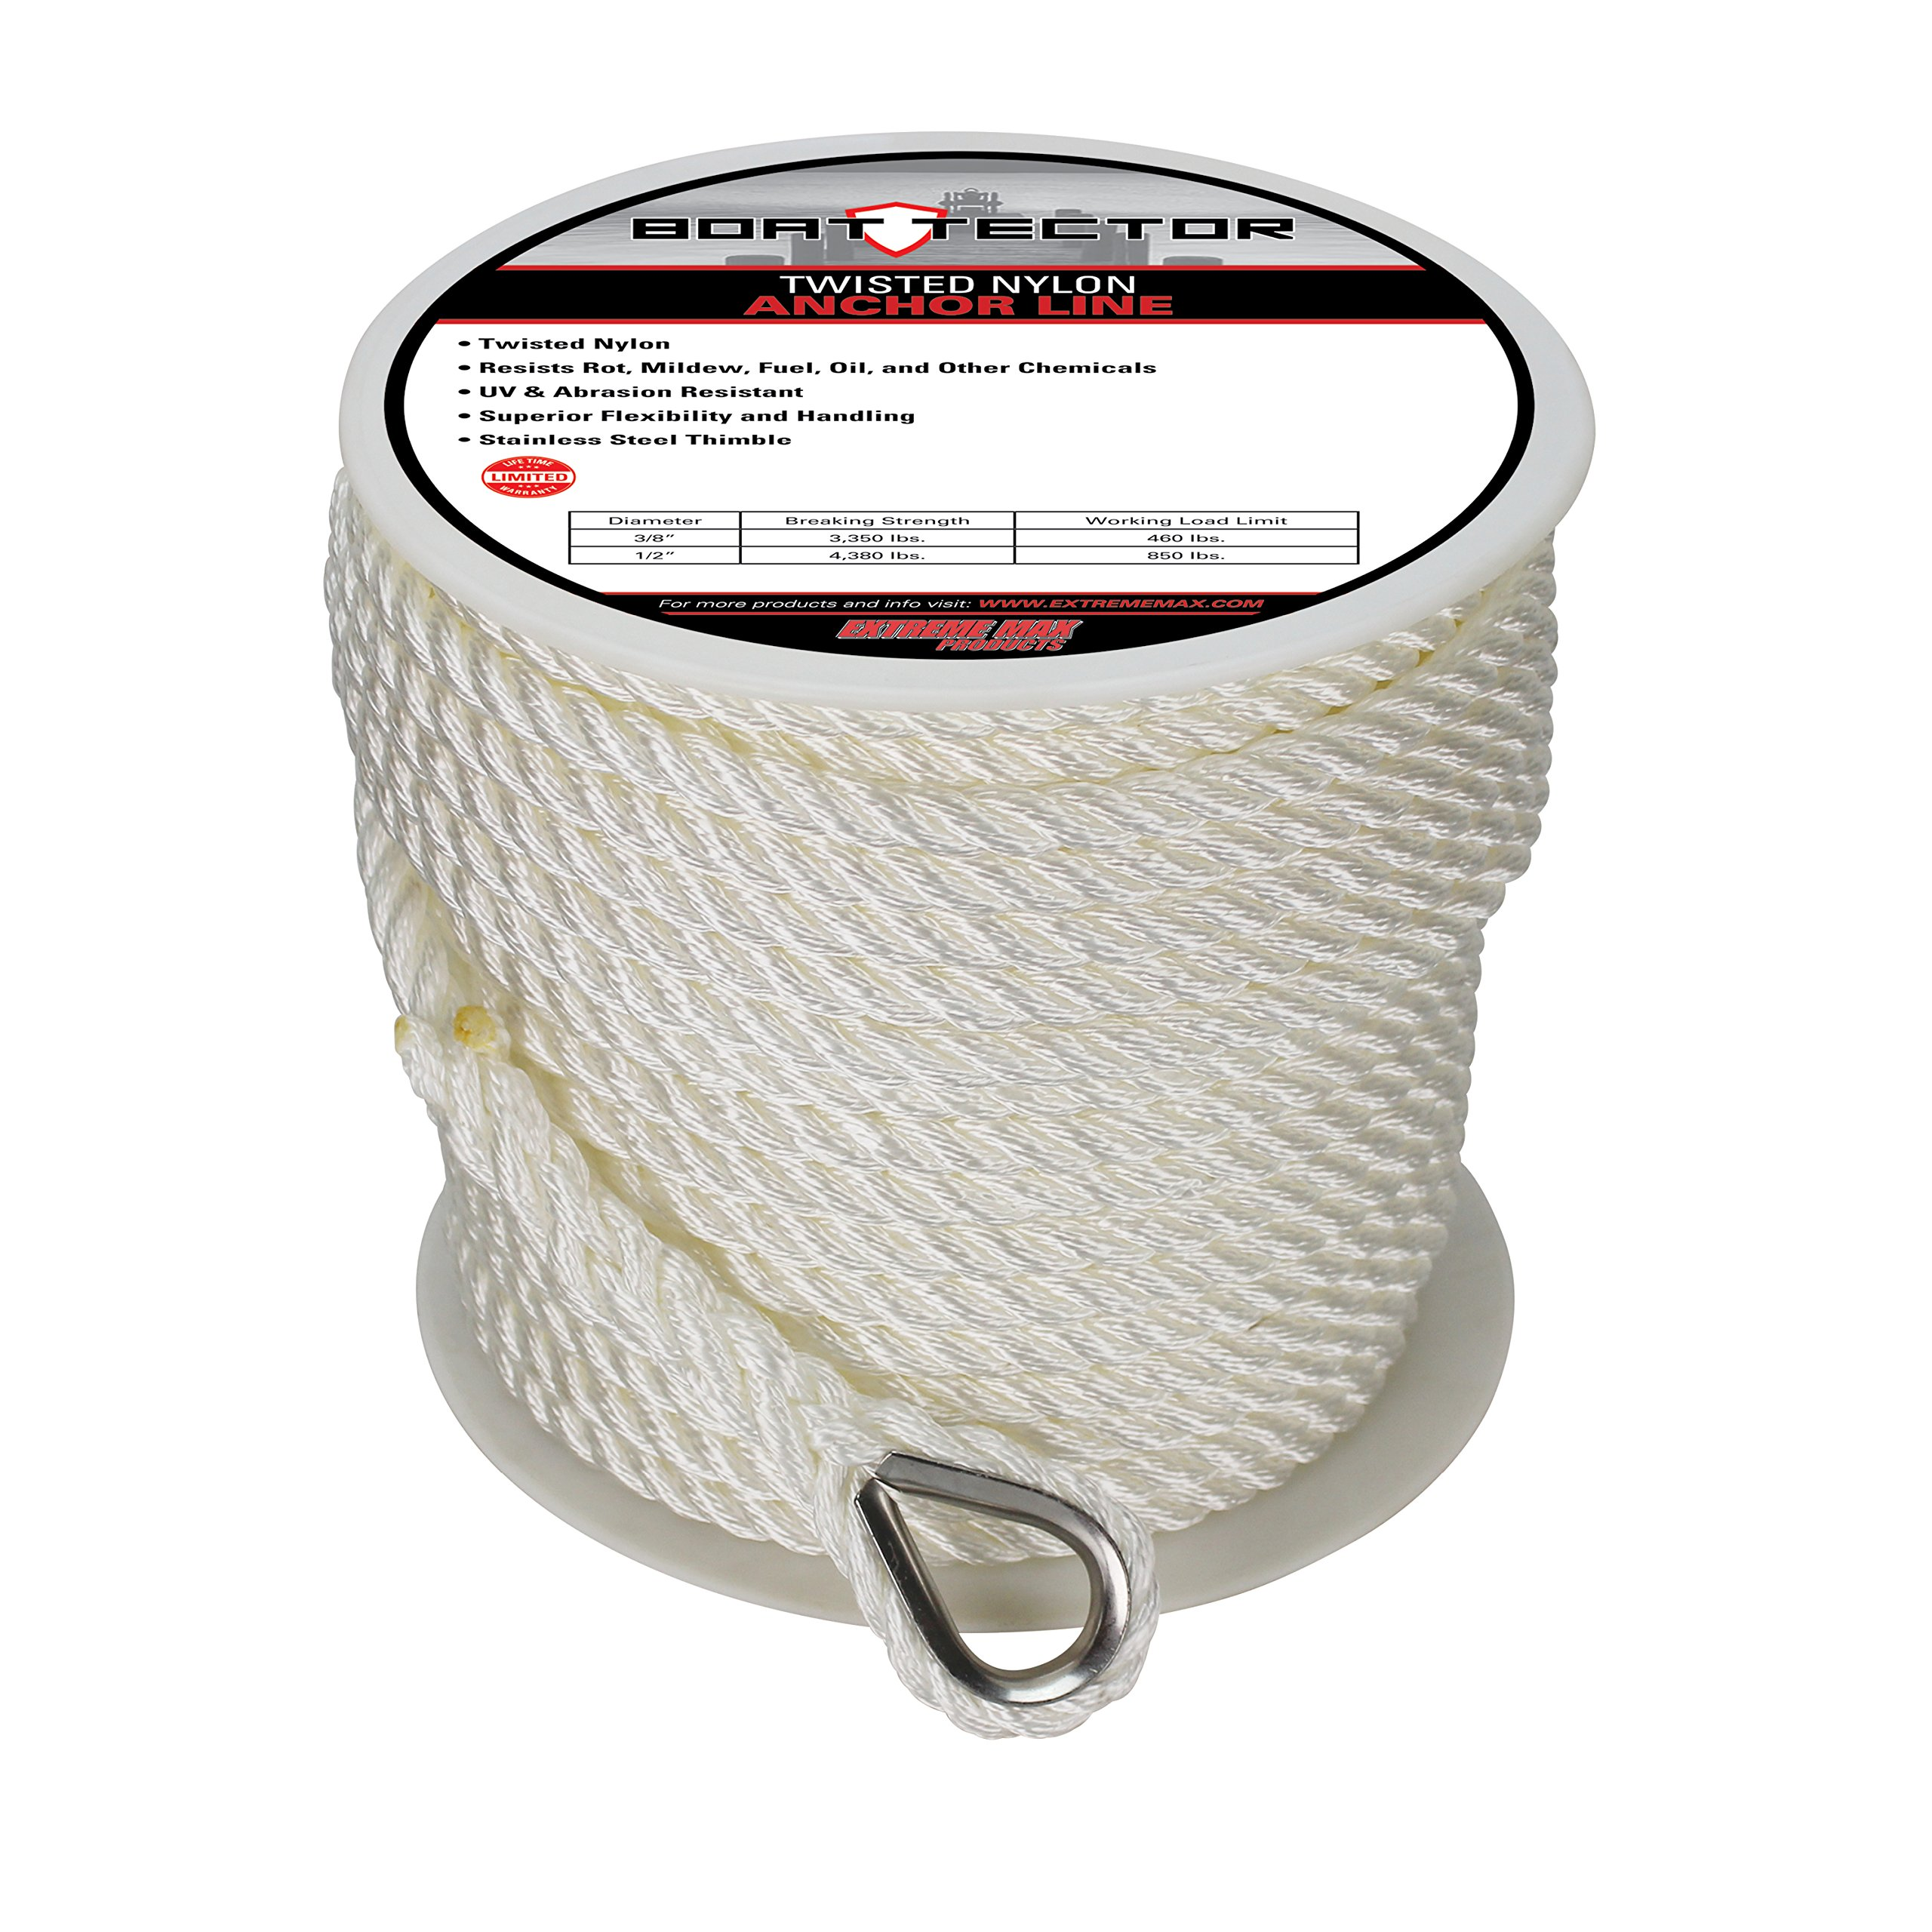 Extreme Max 3006.2306 BoatTector Twisted Nylon Anchor Line with Thimble - 1/2'' x 200', White